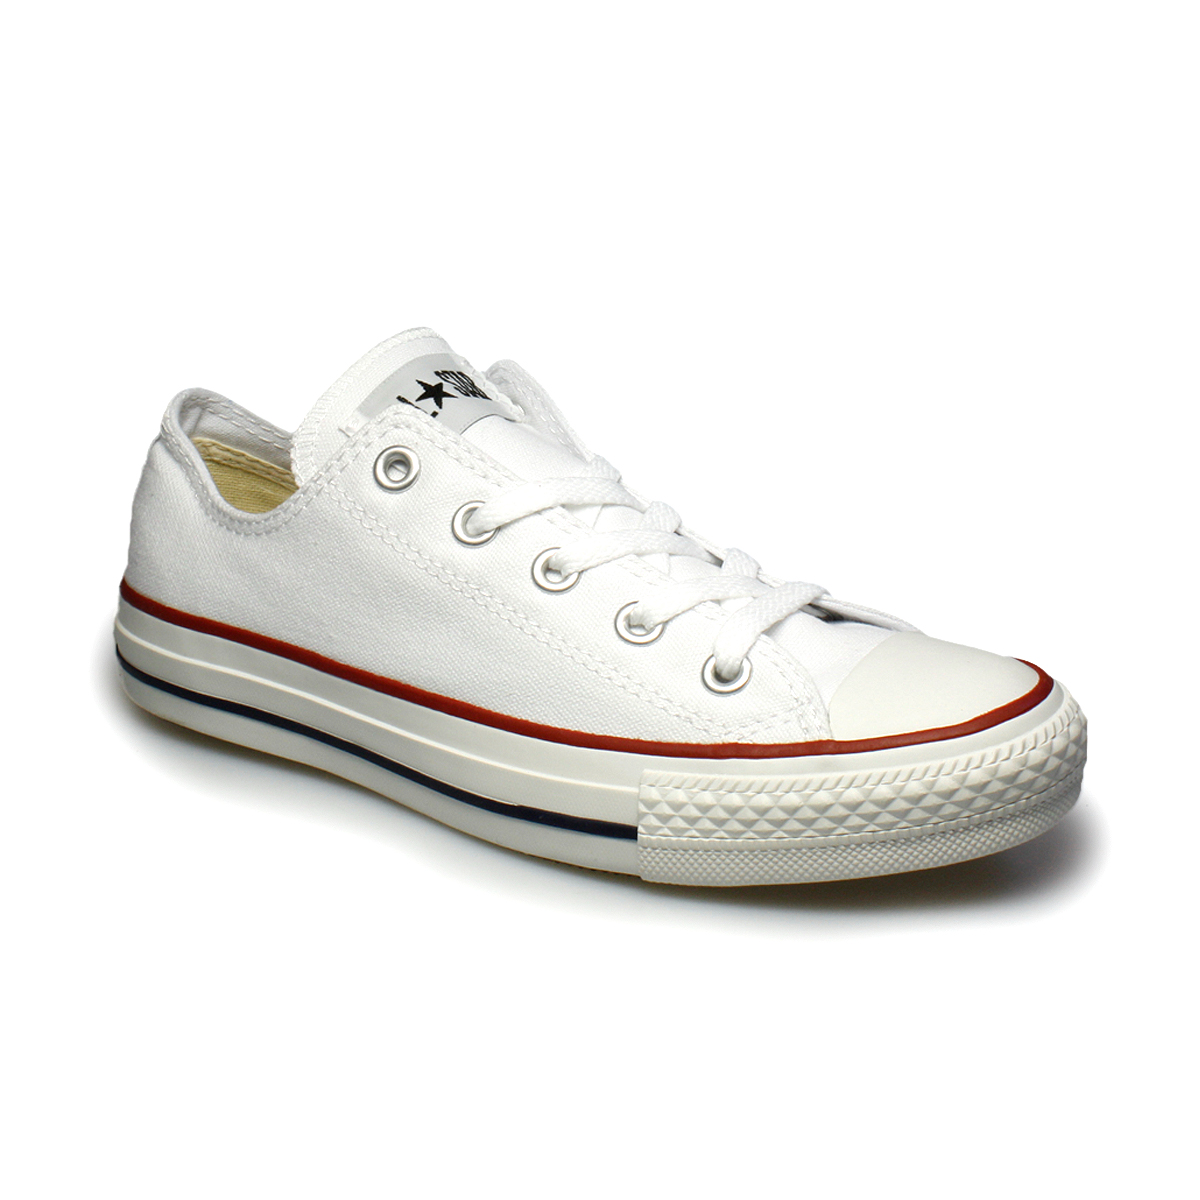 converse all lo white canvas trainers sneakers shoes